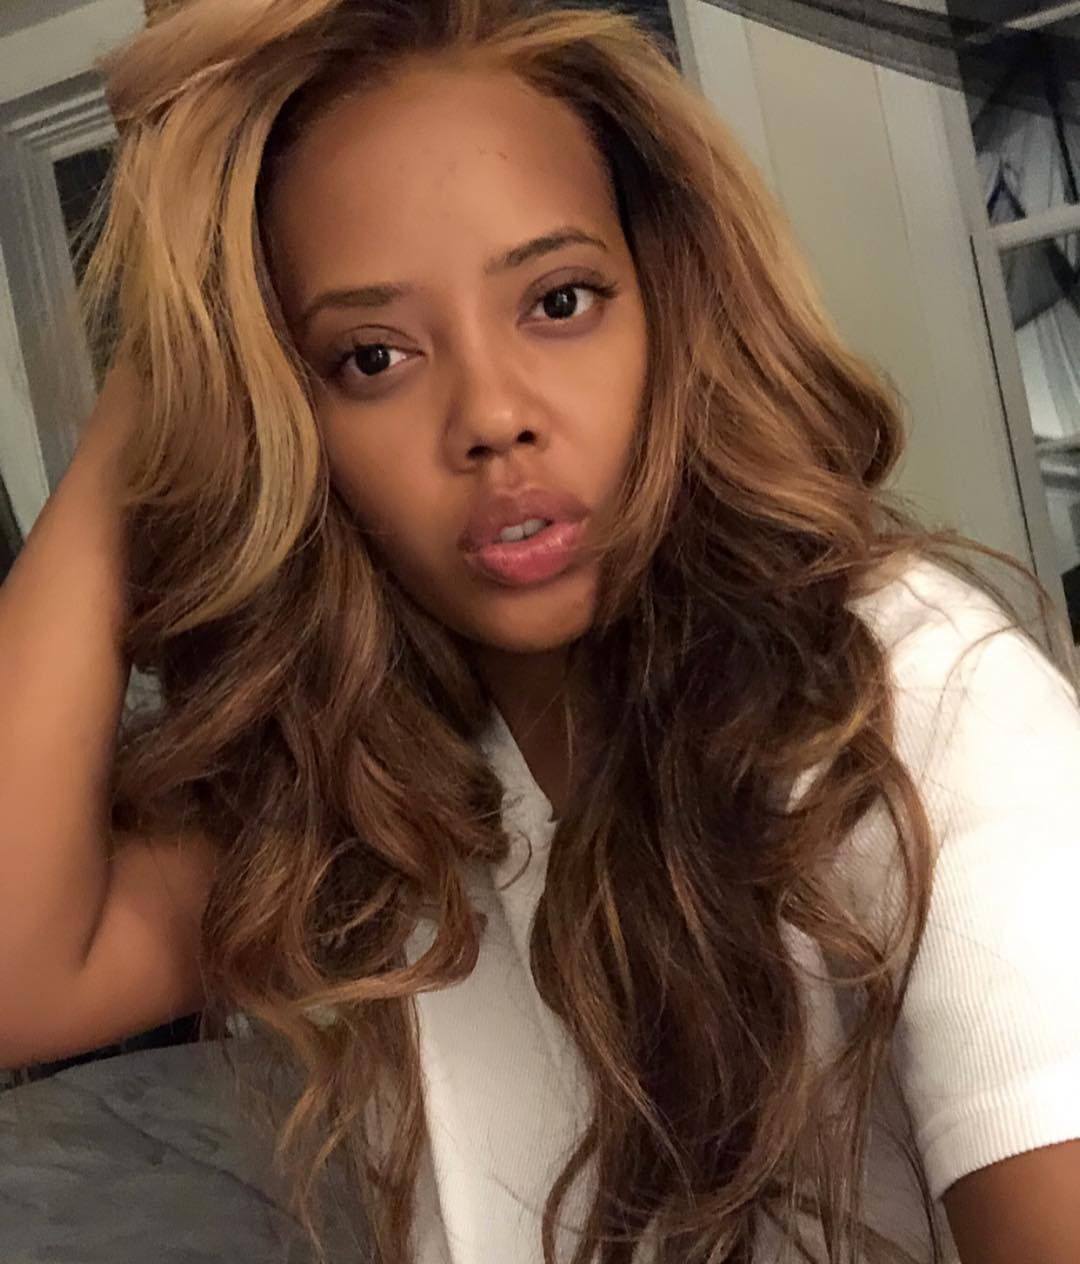 angelasimmons switched it up with a new hair color